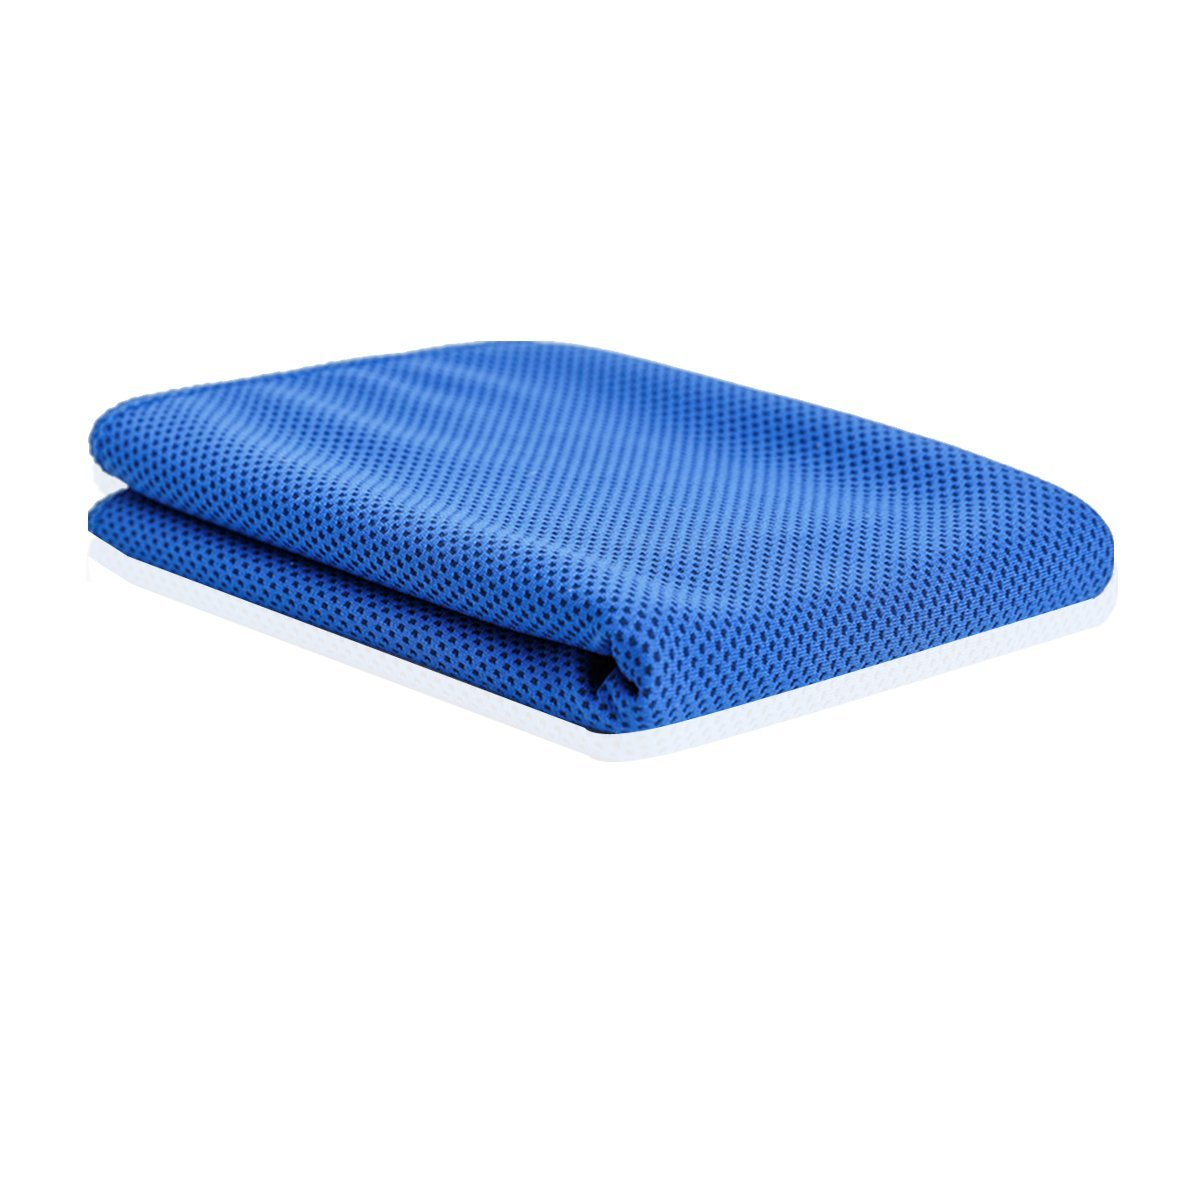 CFORWARD Cooling Towel Instant Heat Relief - Soaking,Shaking,Feeling Icy Cool - Wipe the Sweat Keep Cool for Running Biking Hiking Golf and Other Sports - Fever can Cold Compress